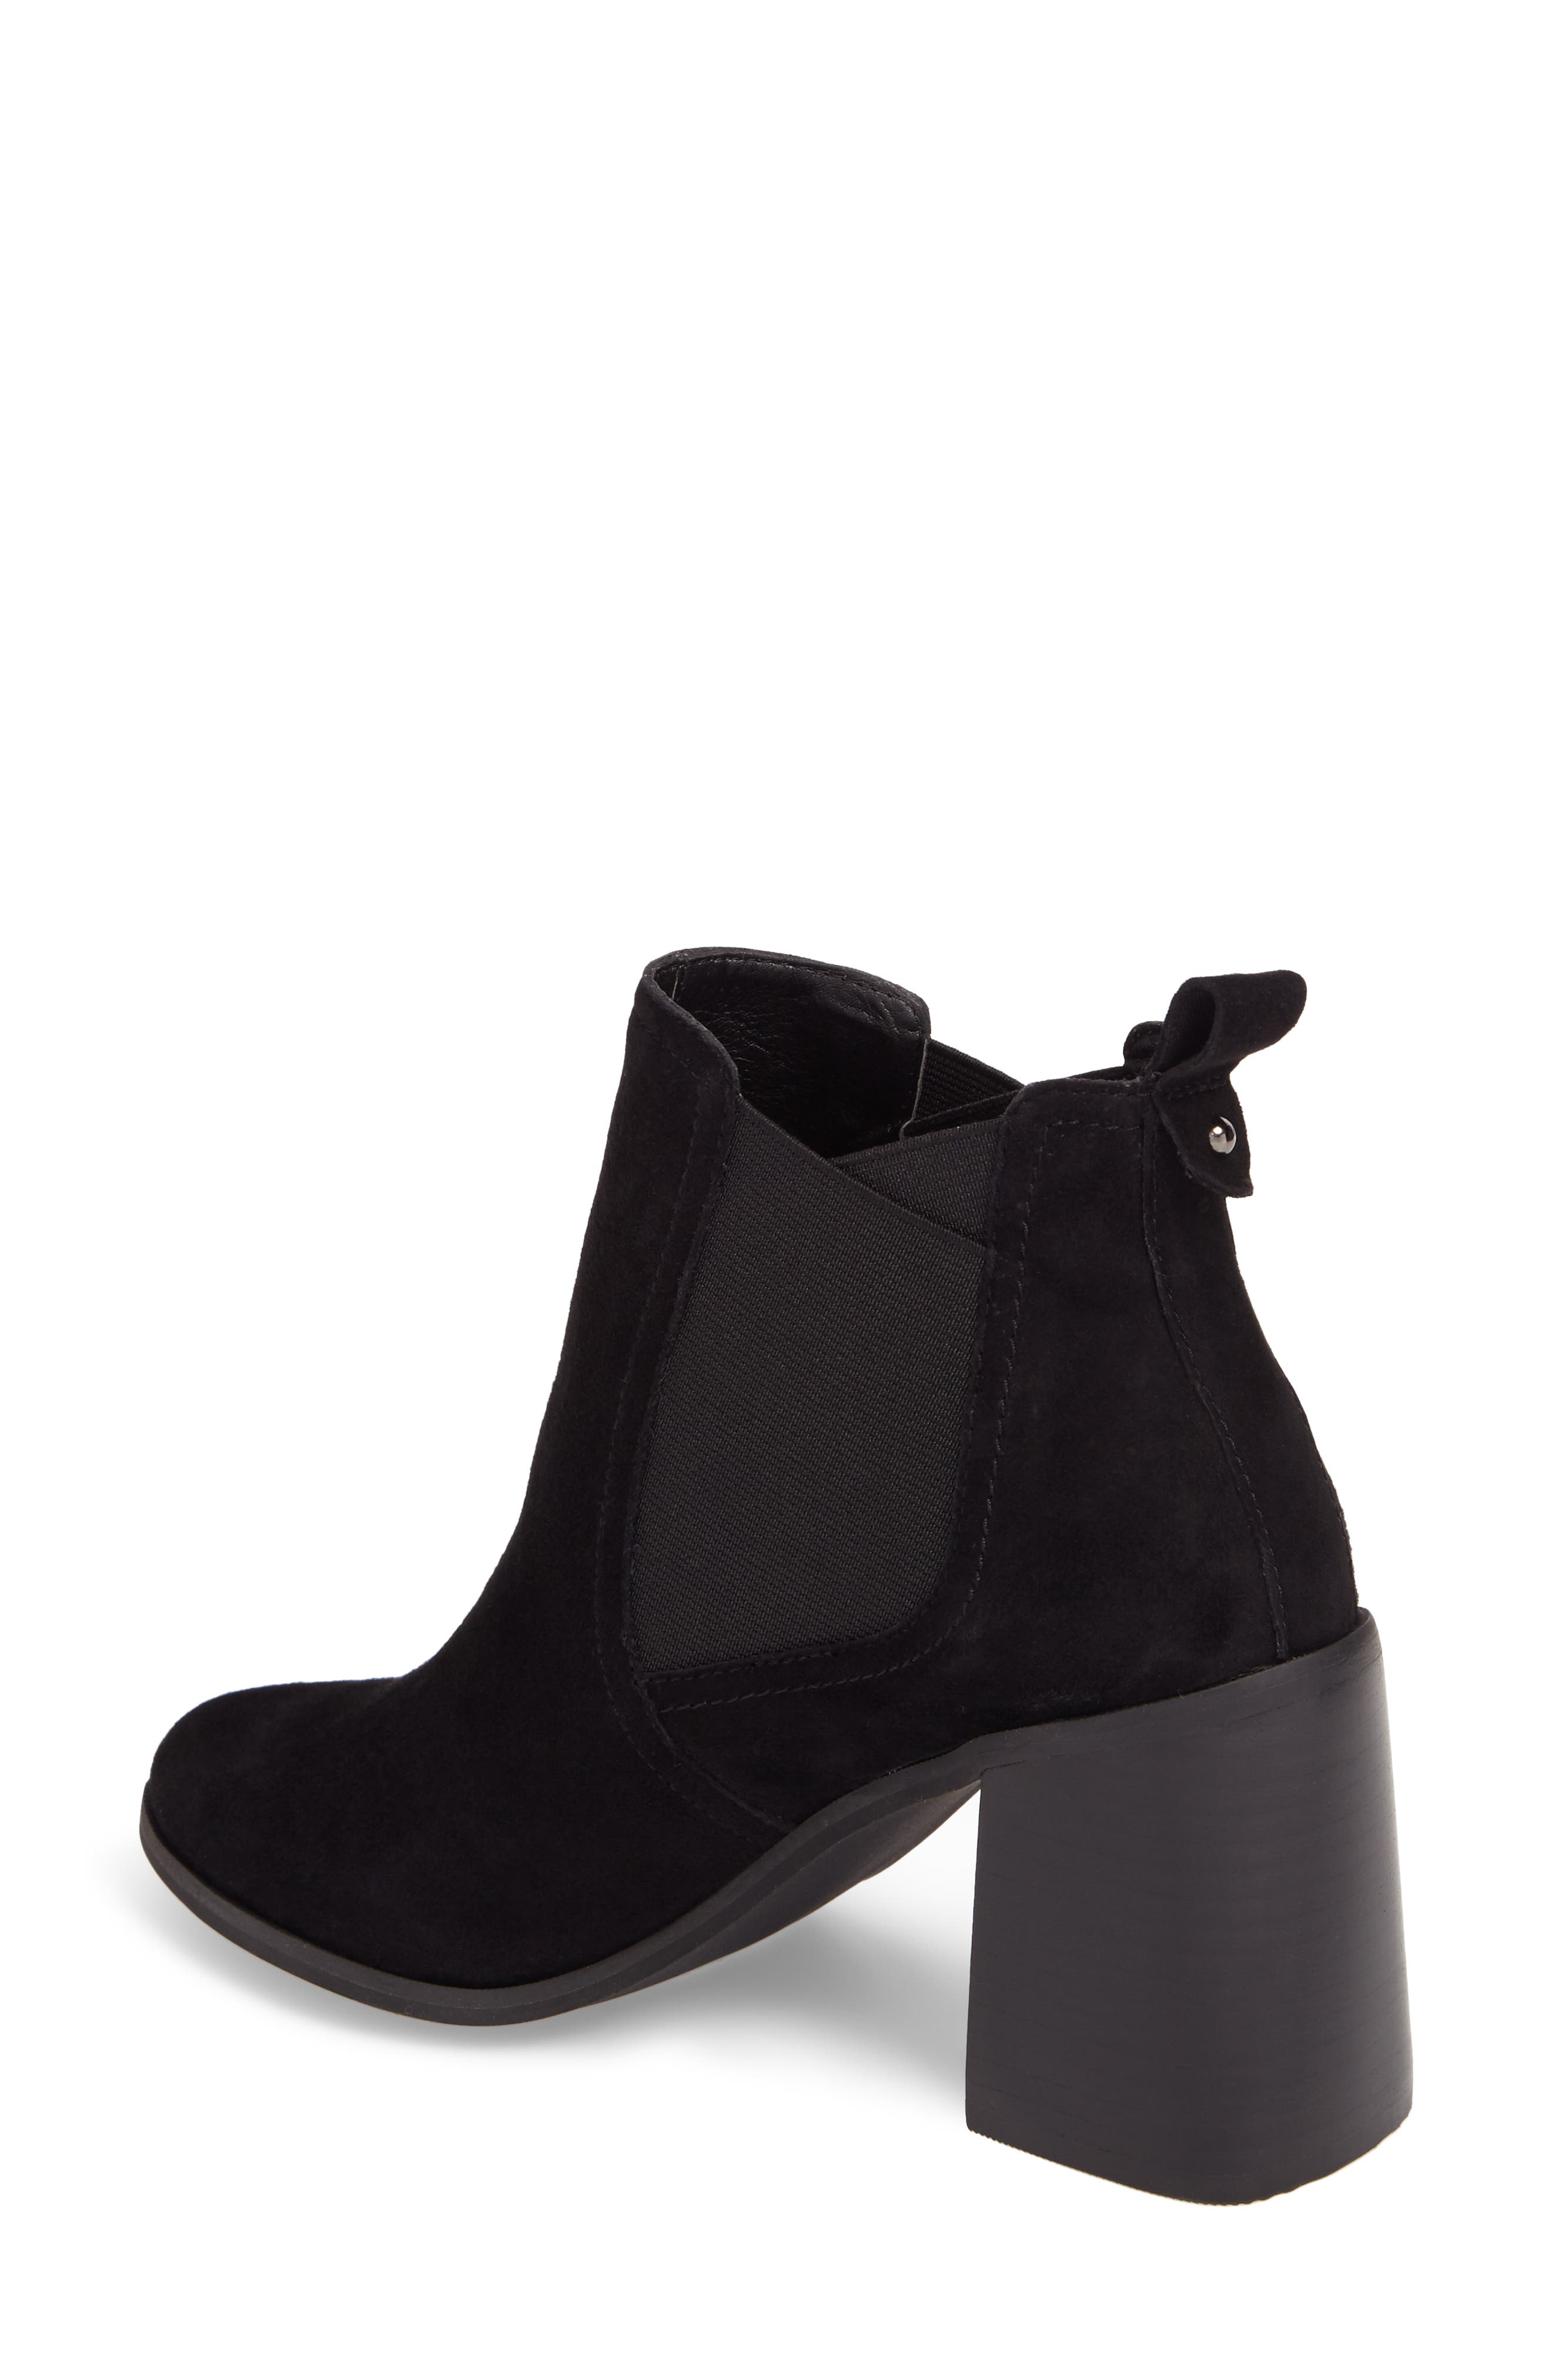 Quinn Flared Heel Chelsea Bootie,                             Alternate thumbnail 7, color,